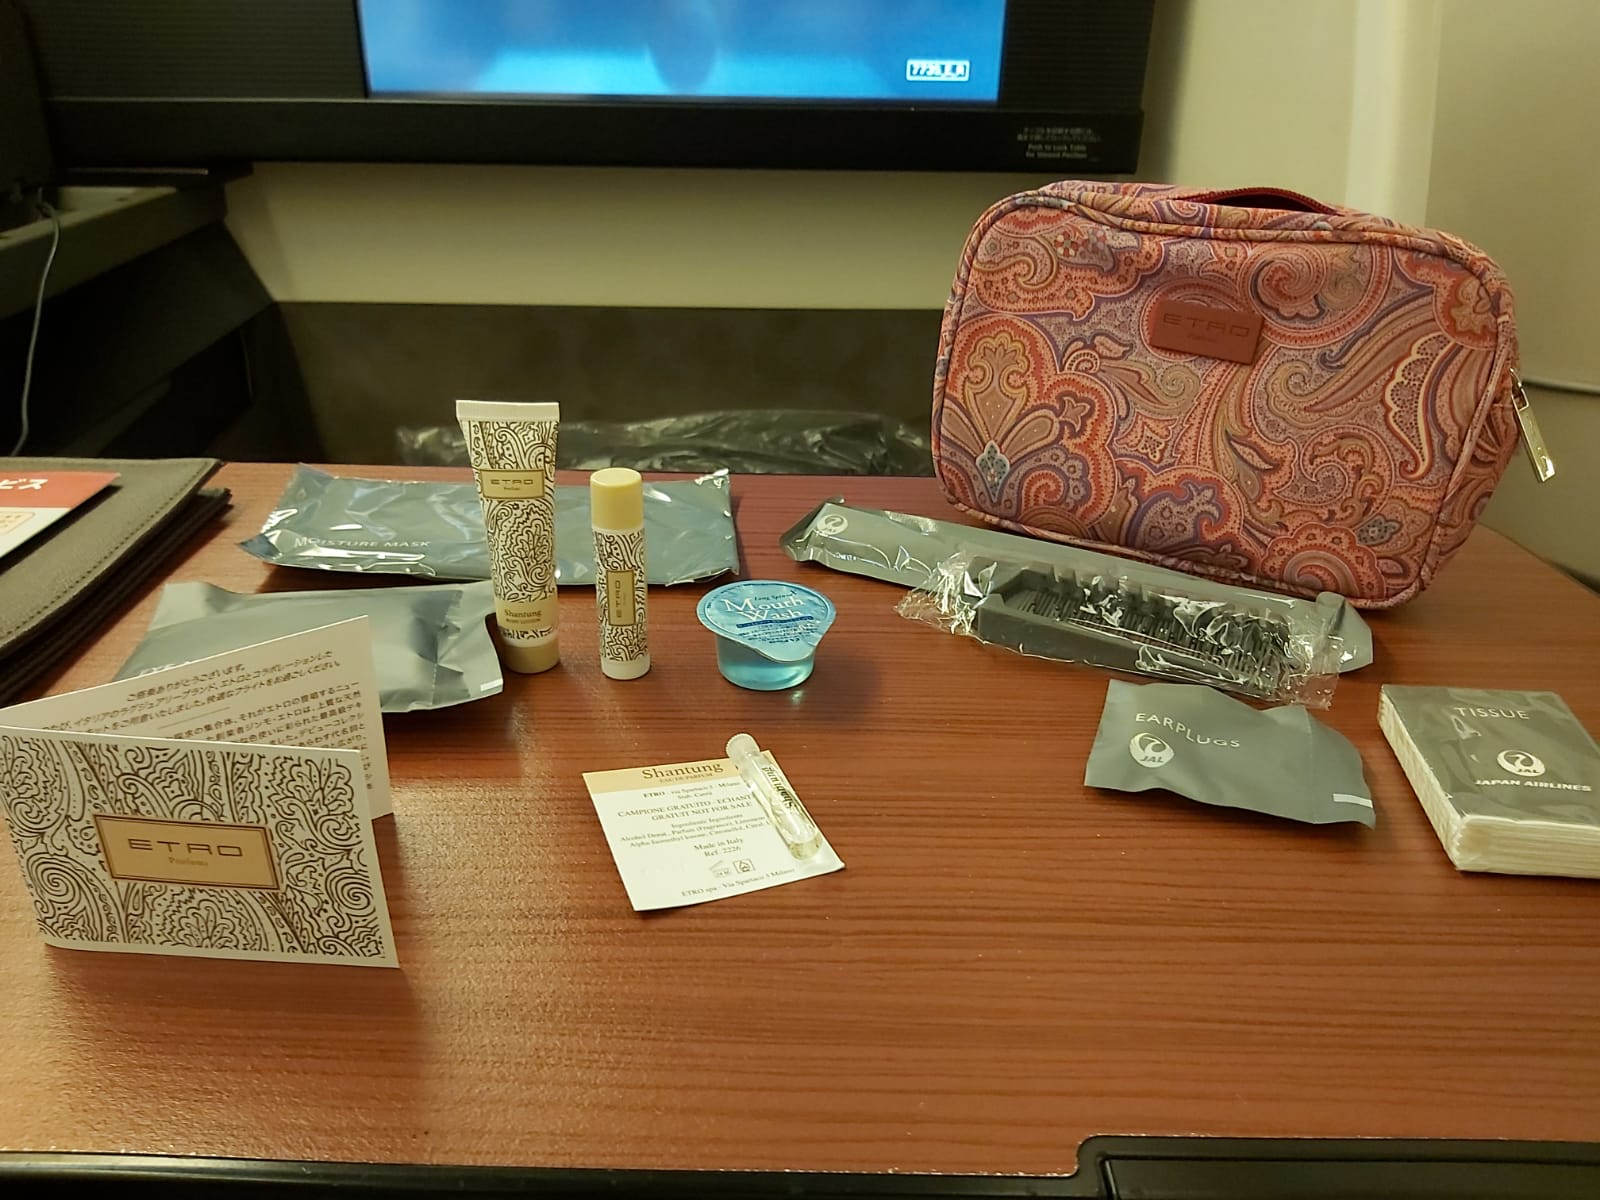 Japan Airlines first class amenity kit